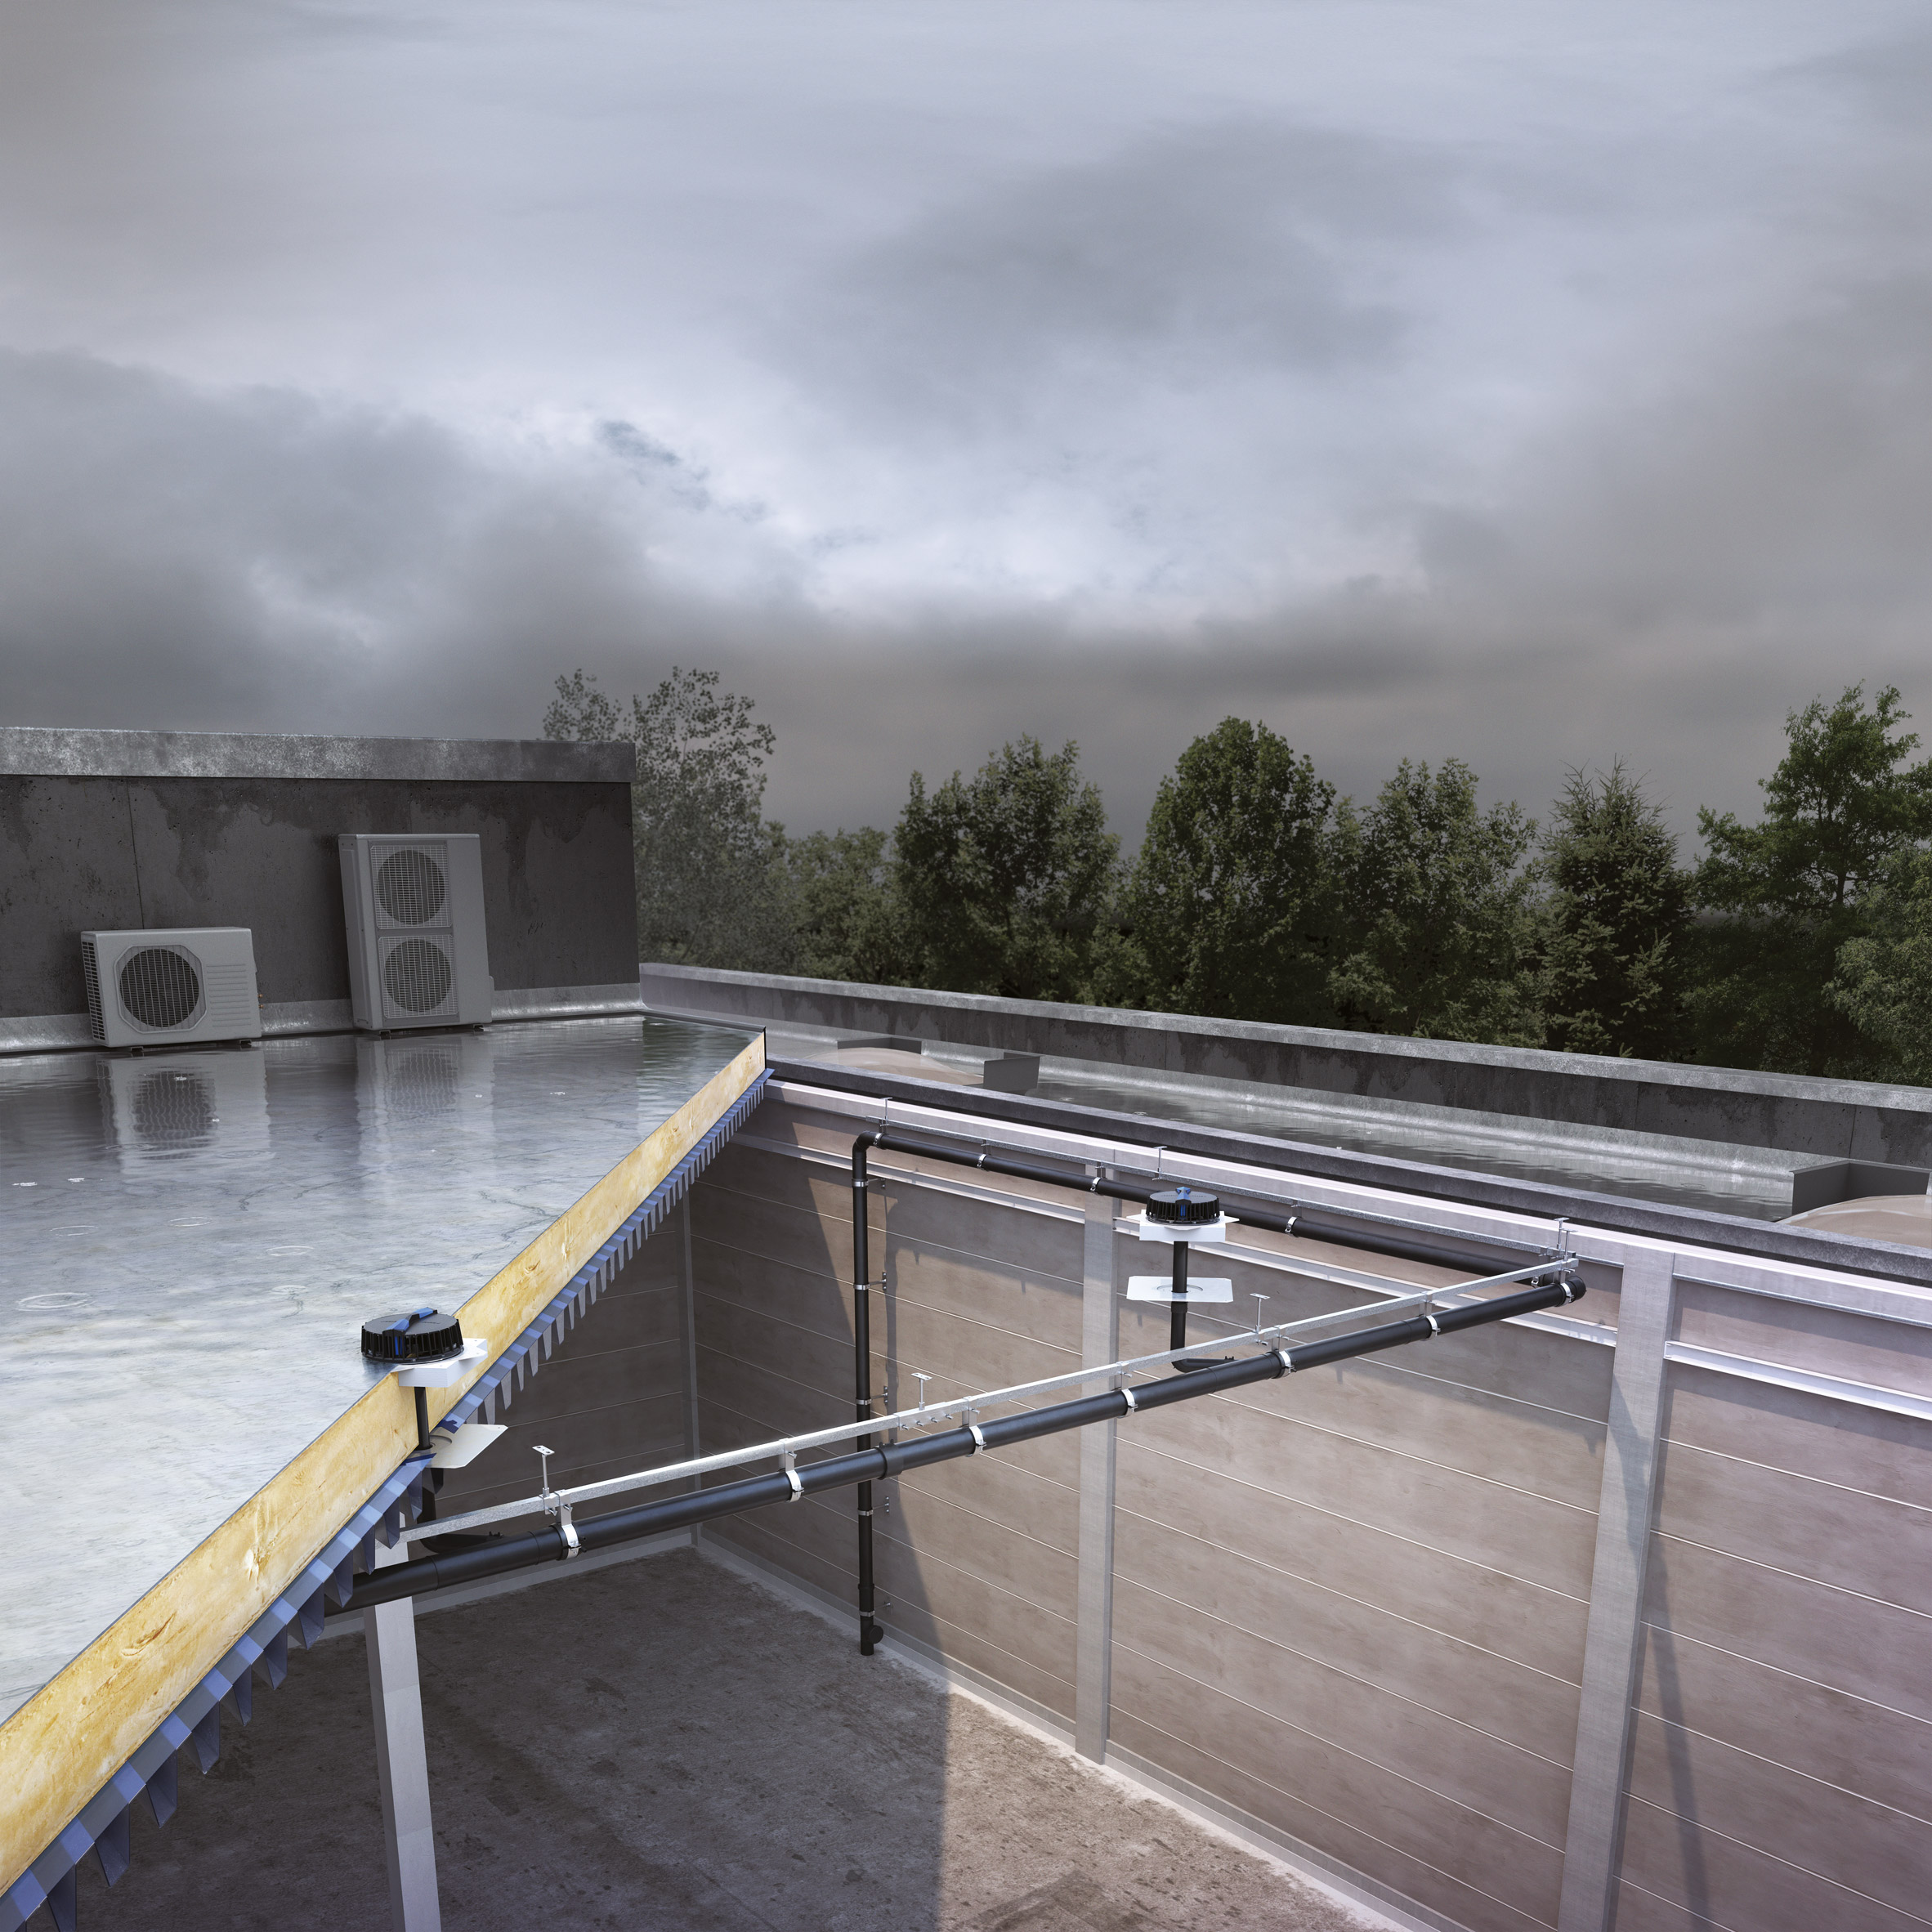 The Pluvia roof outlets by Geberit